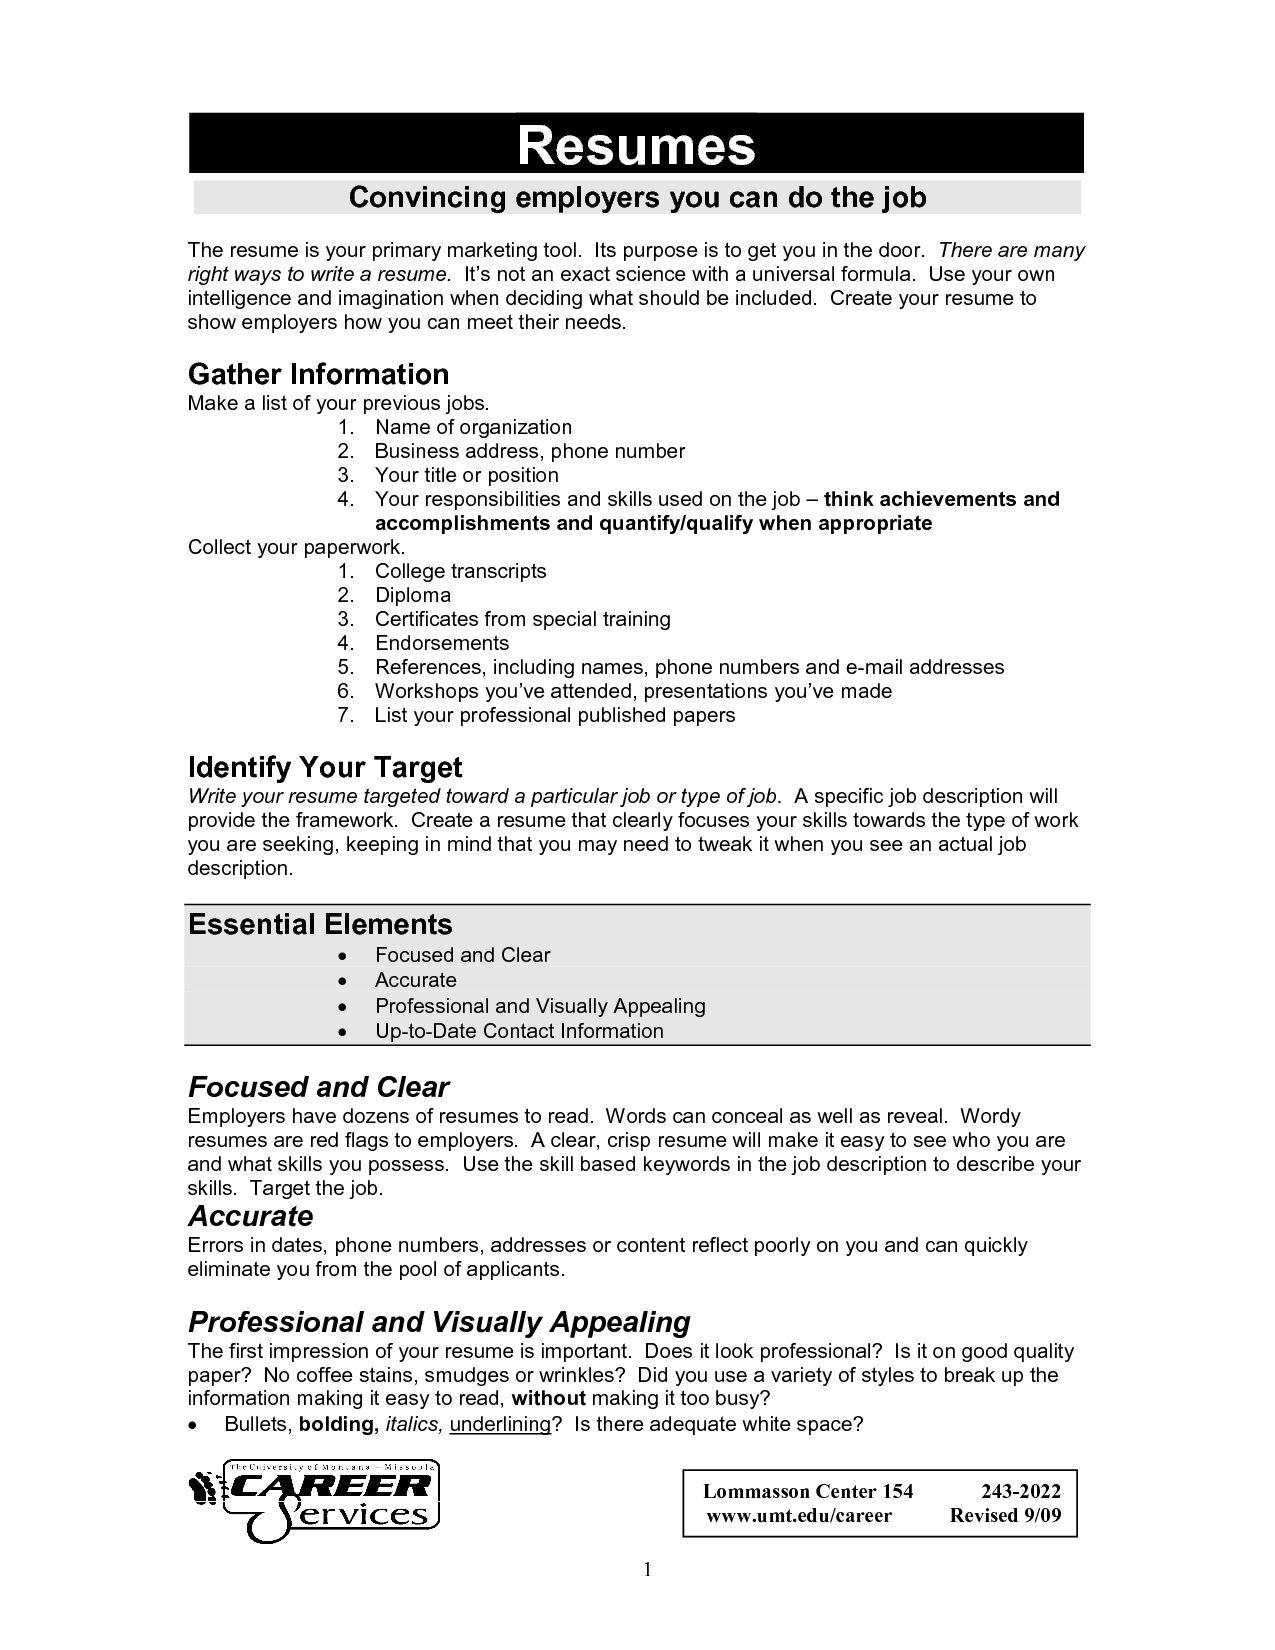 Career Builder Resume Stunning Career Builder Resume Serviceregularmidwesterners Resume And  Http